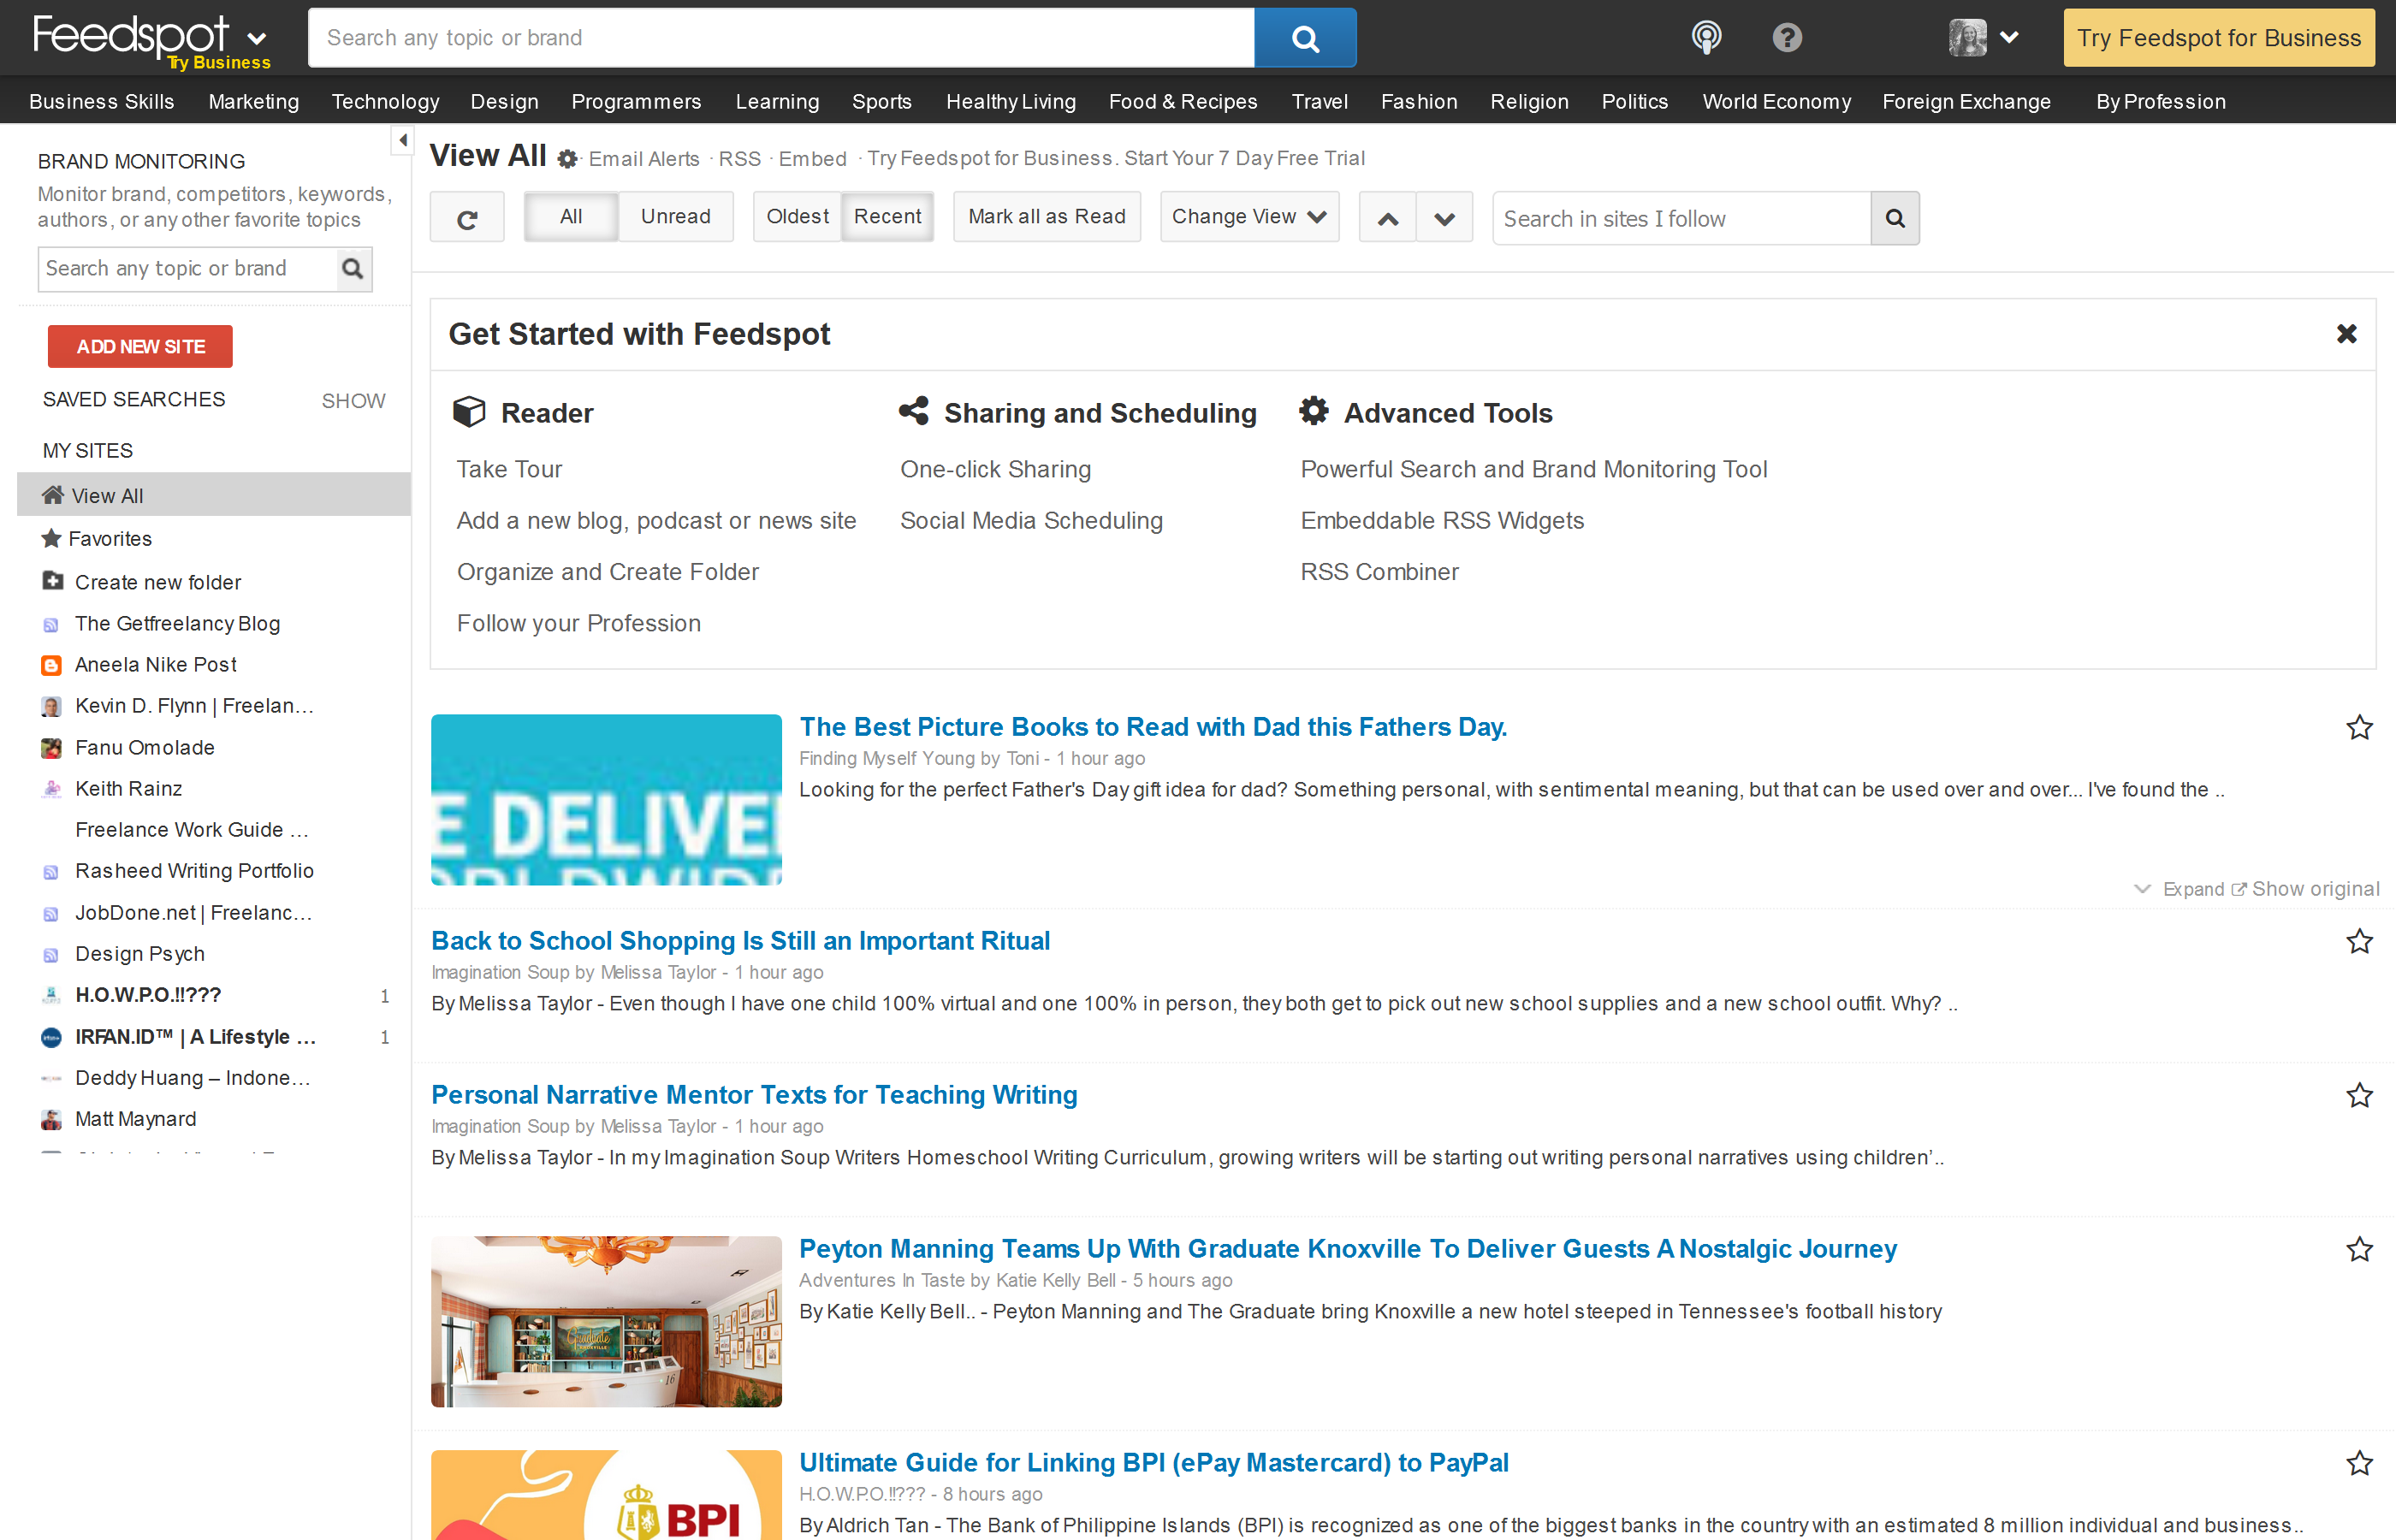 Screenshot of Feedspot, showing a feed of content